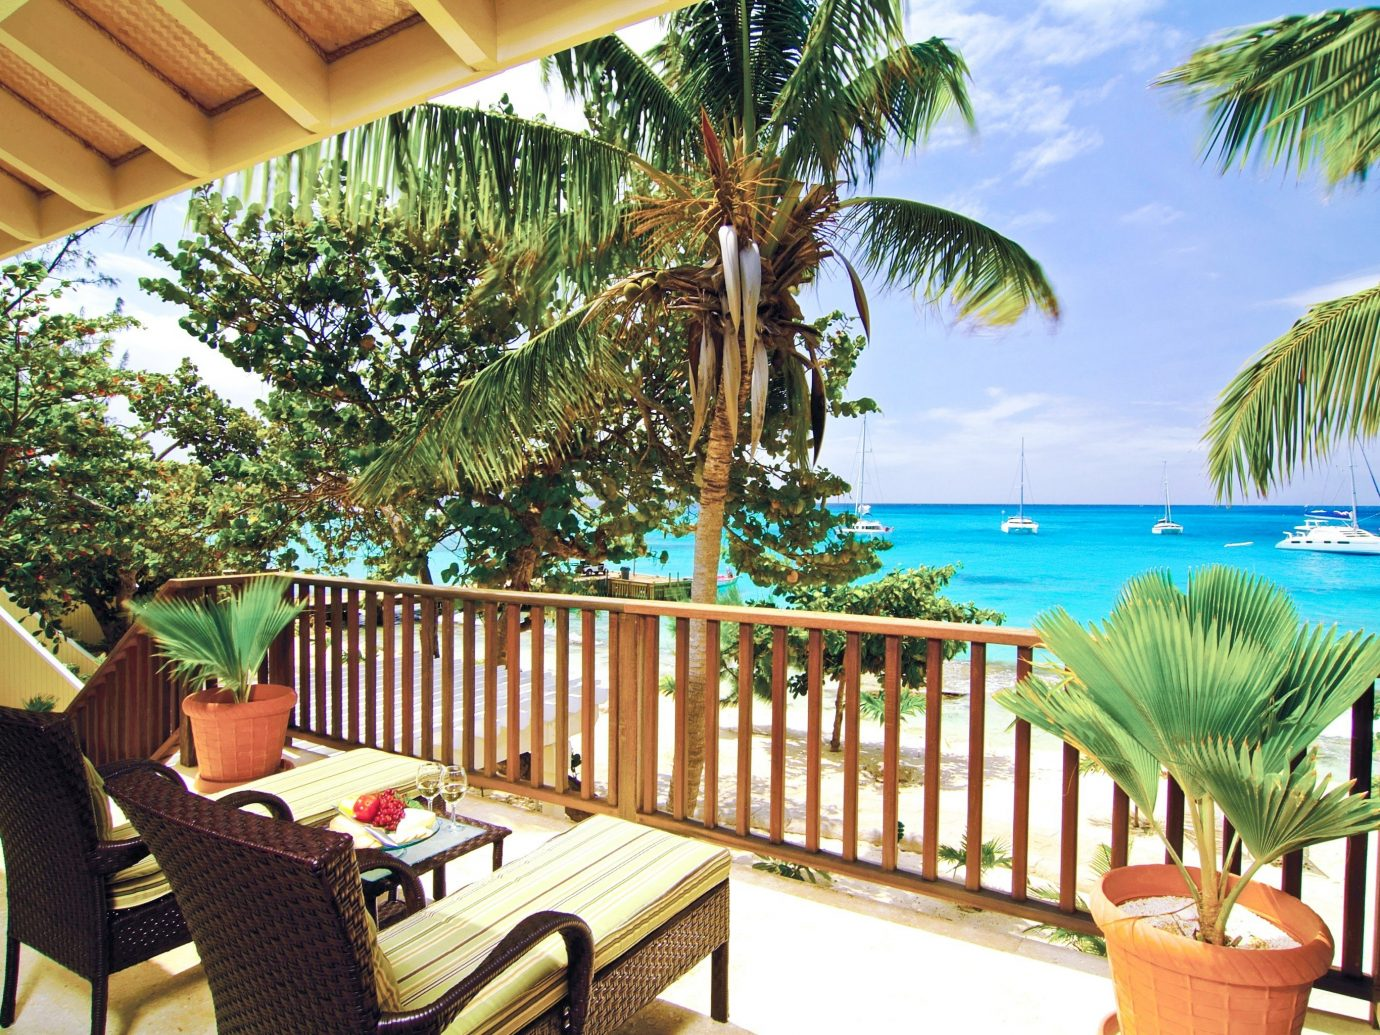 Hotels tree chair leisure property Resort caribbean vacation estate Villa plant decorated furniture real estate eco hotel palm porch Deck